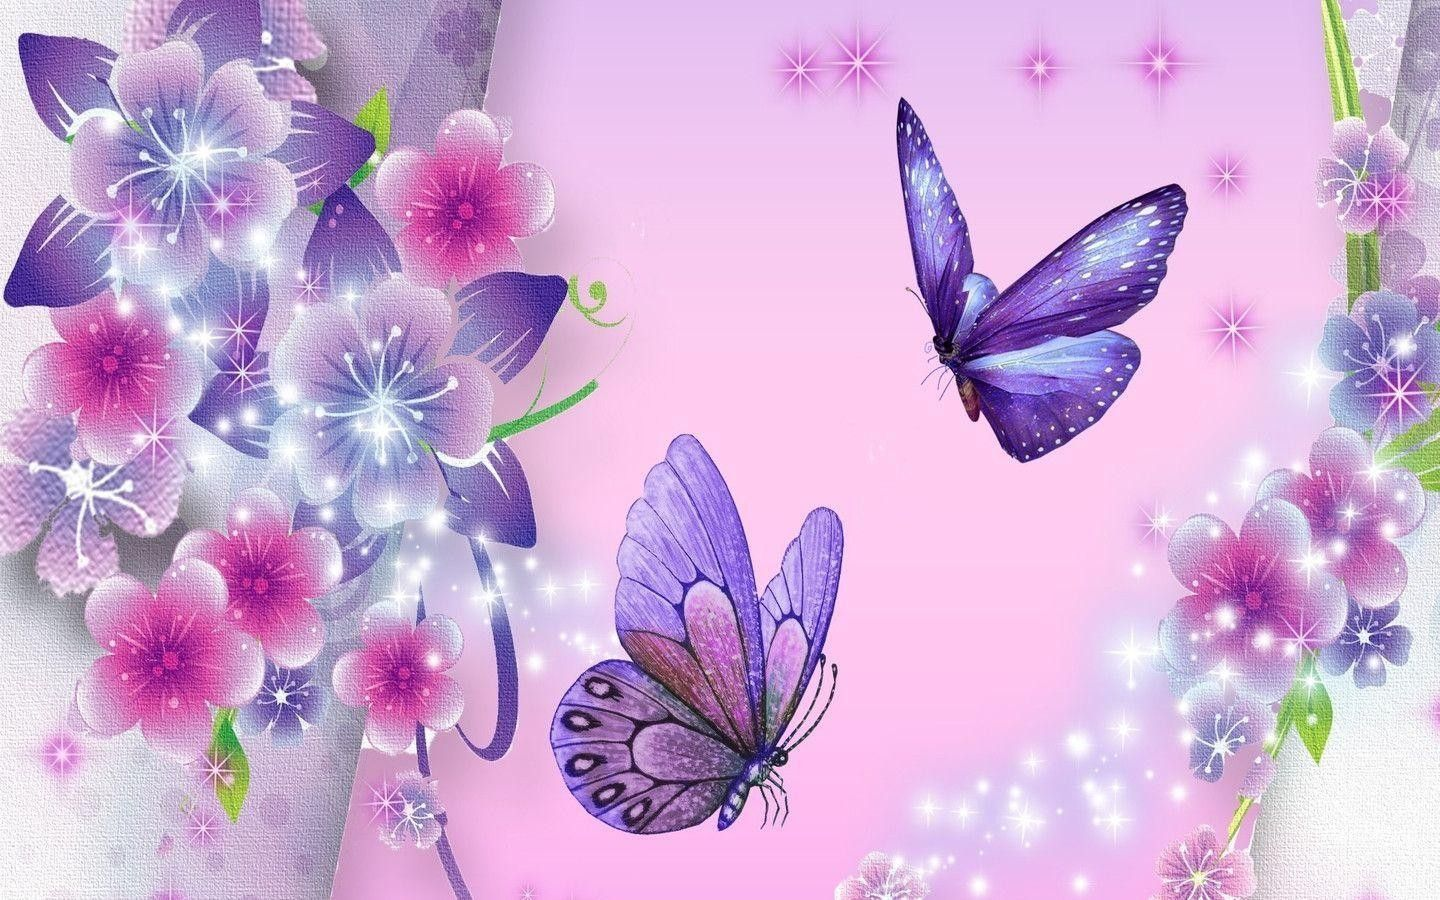 Glitter Wallpaper Butterfly Images For Dp